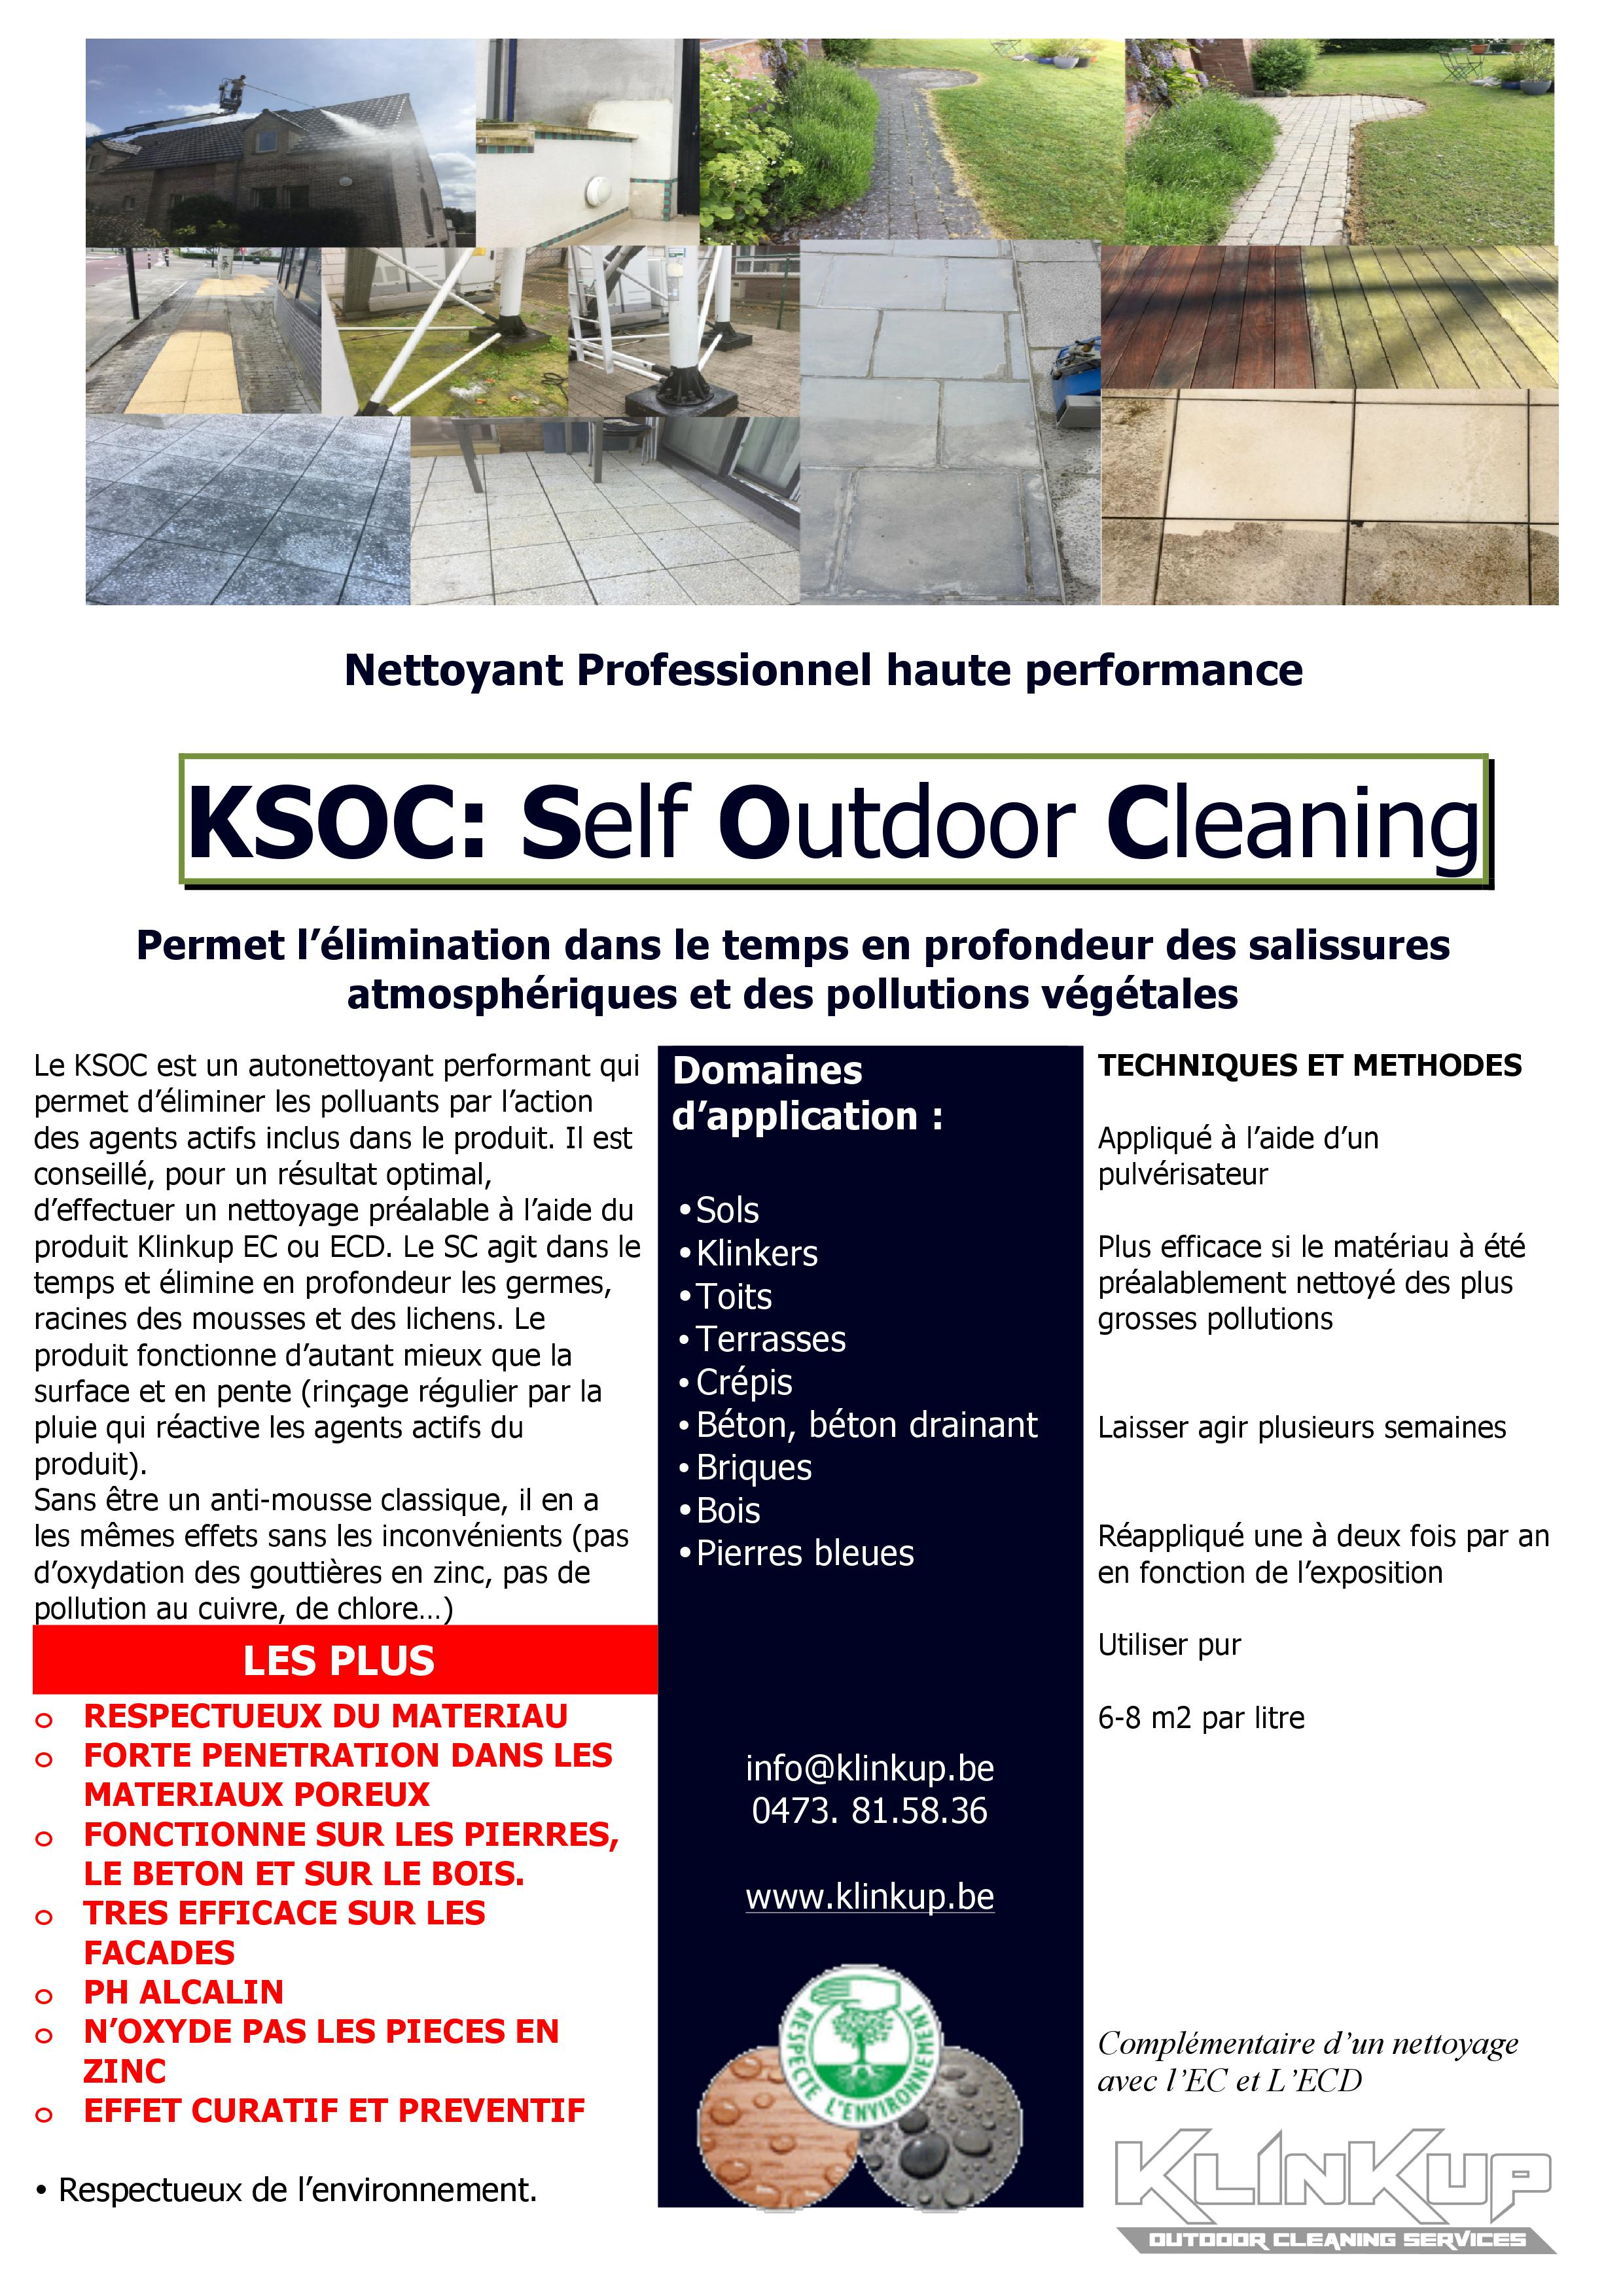 KSOC : Self outdoor Cleaning